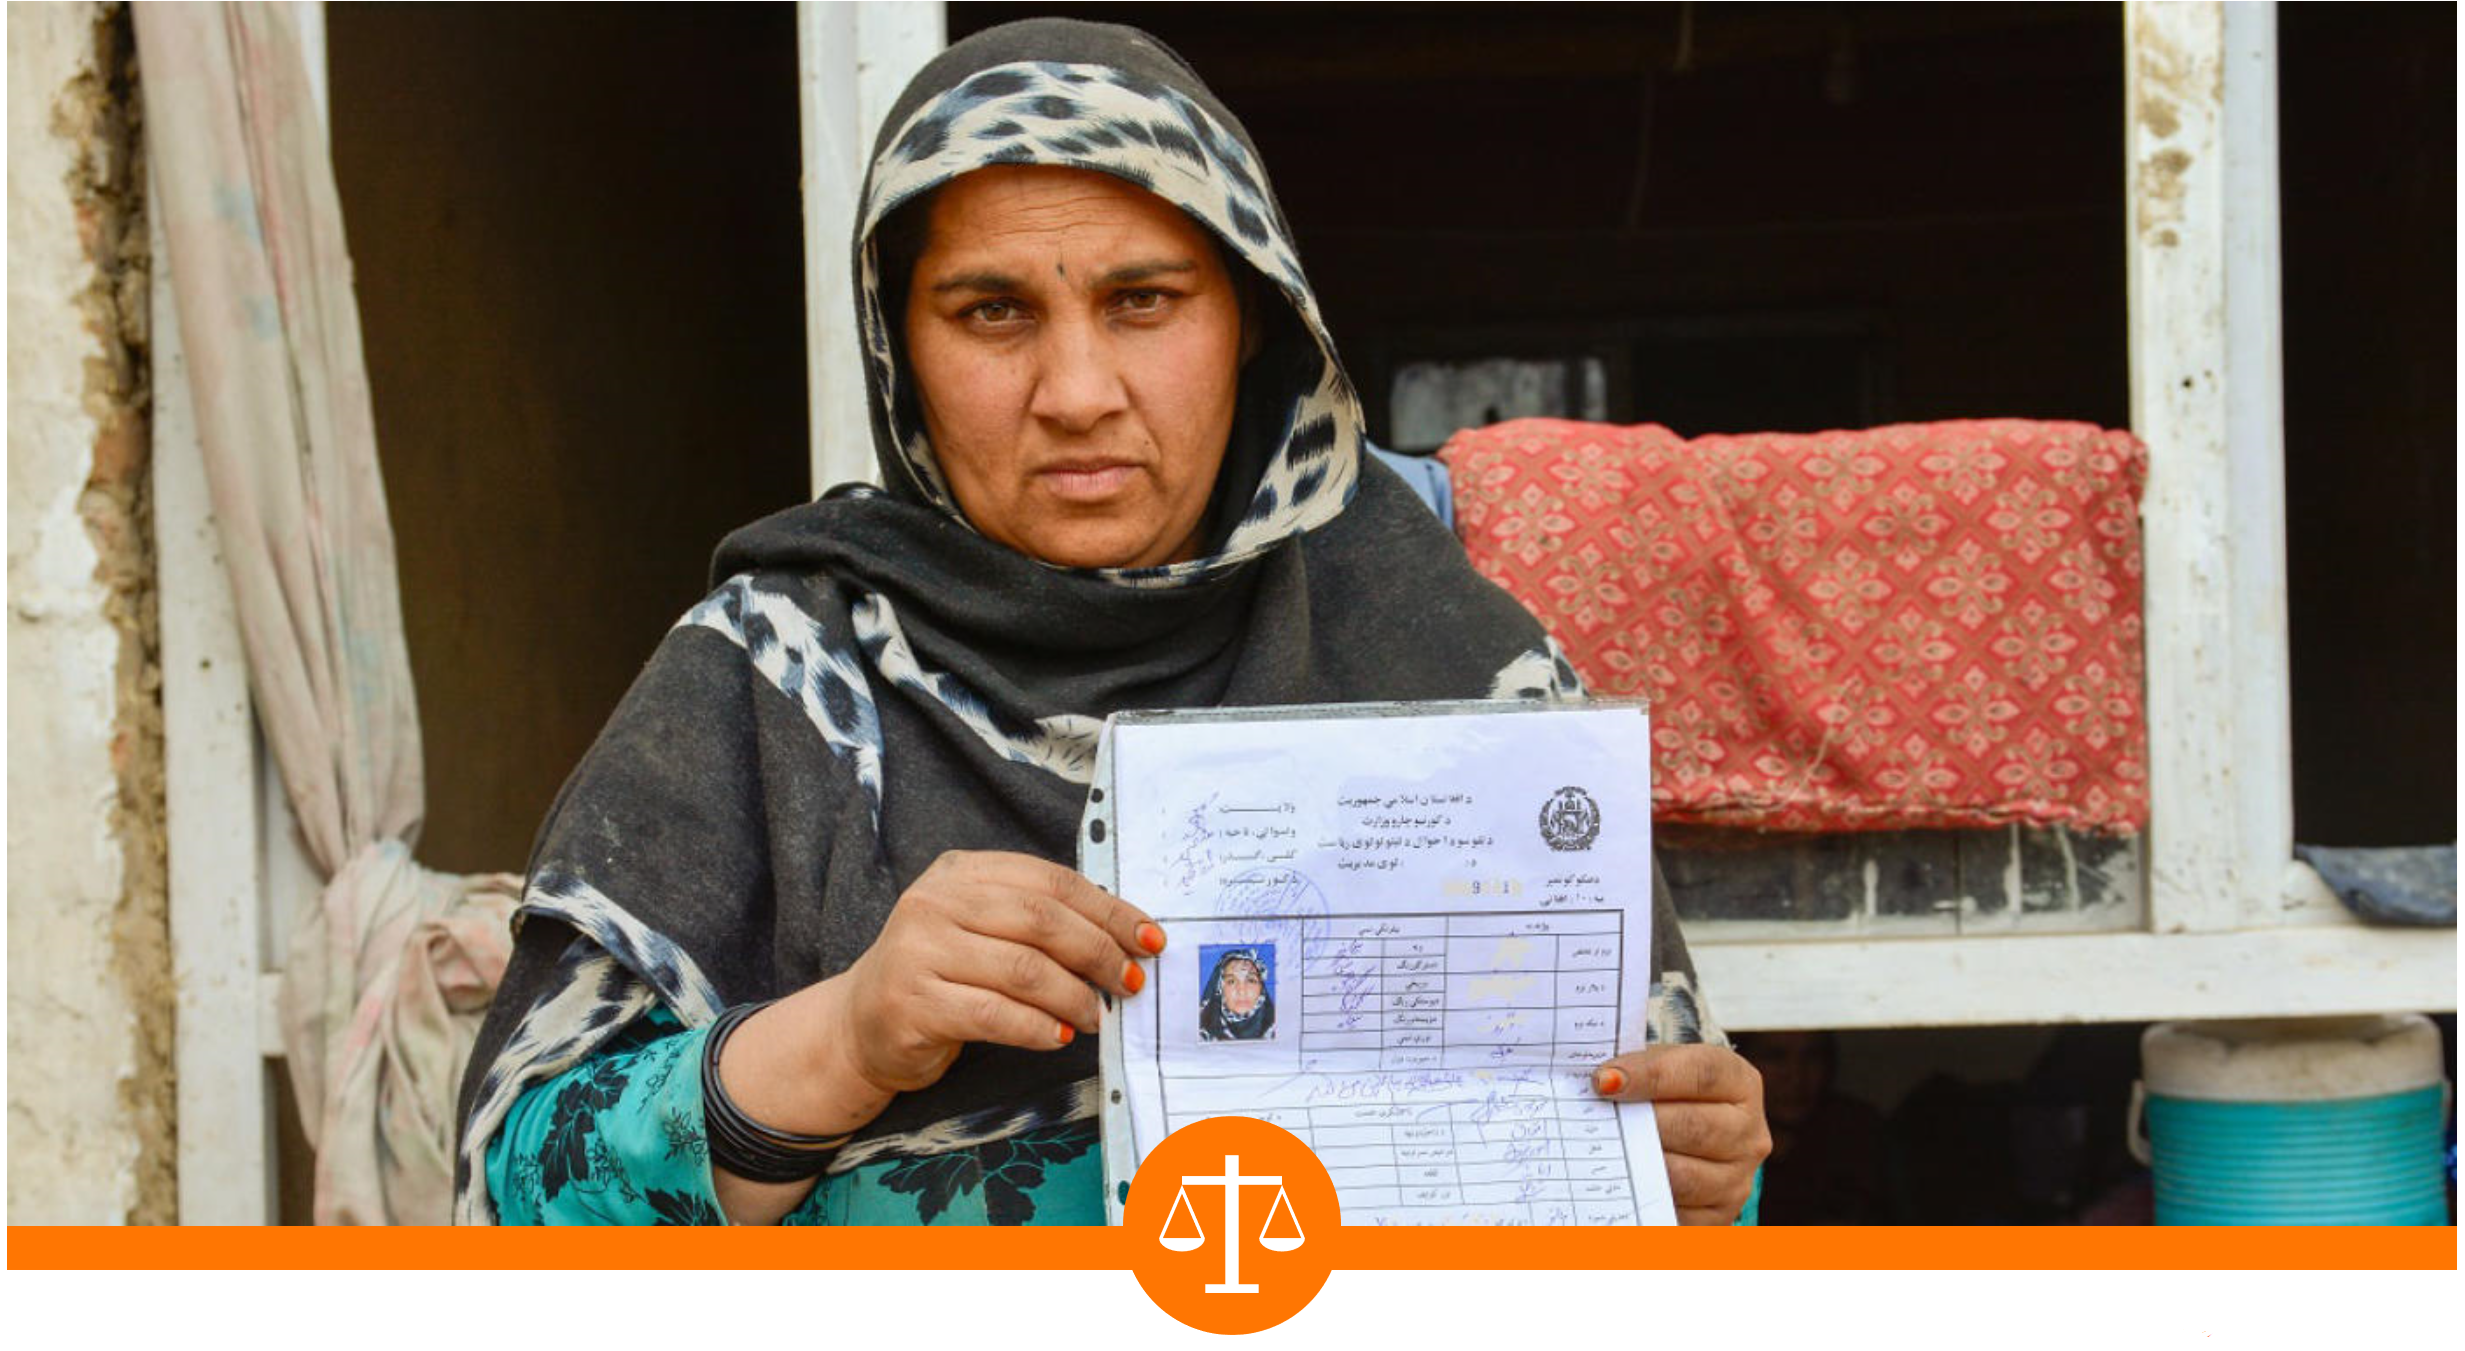 Forty-year-old Zia Gull has seven children, and her family is so poor that she could not apply for an ID card by herself. NRC helped her obtain the document in Kabul, Afghanistan. Enayatullah Azad/NRC